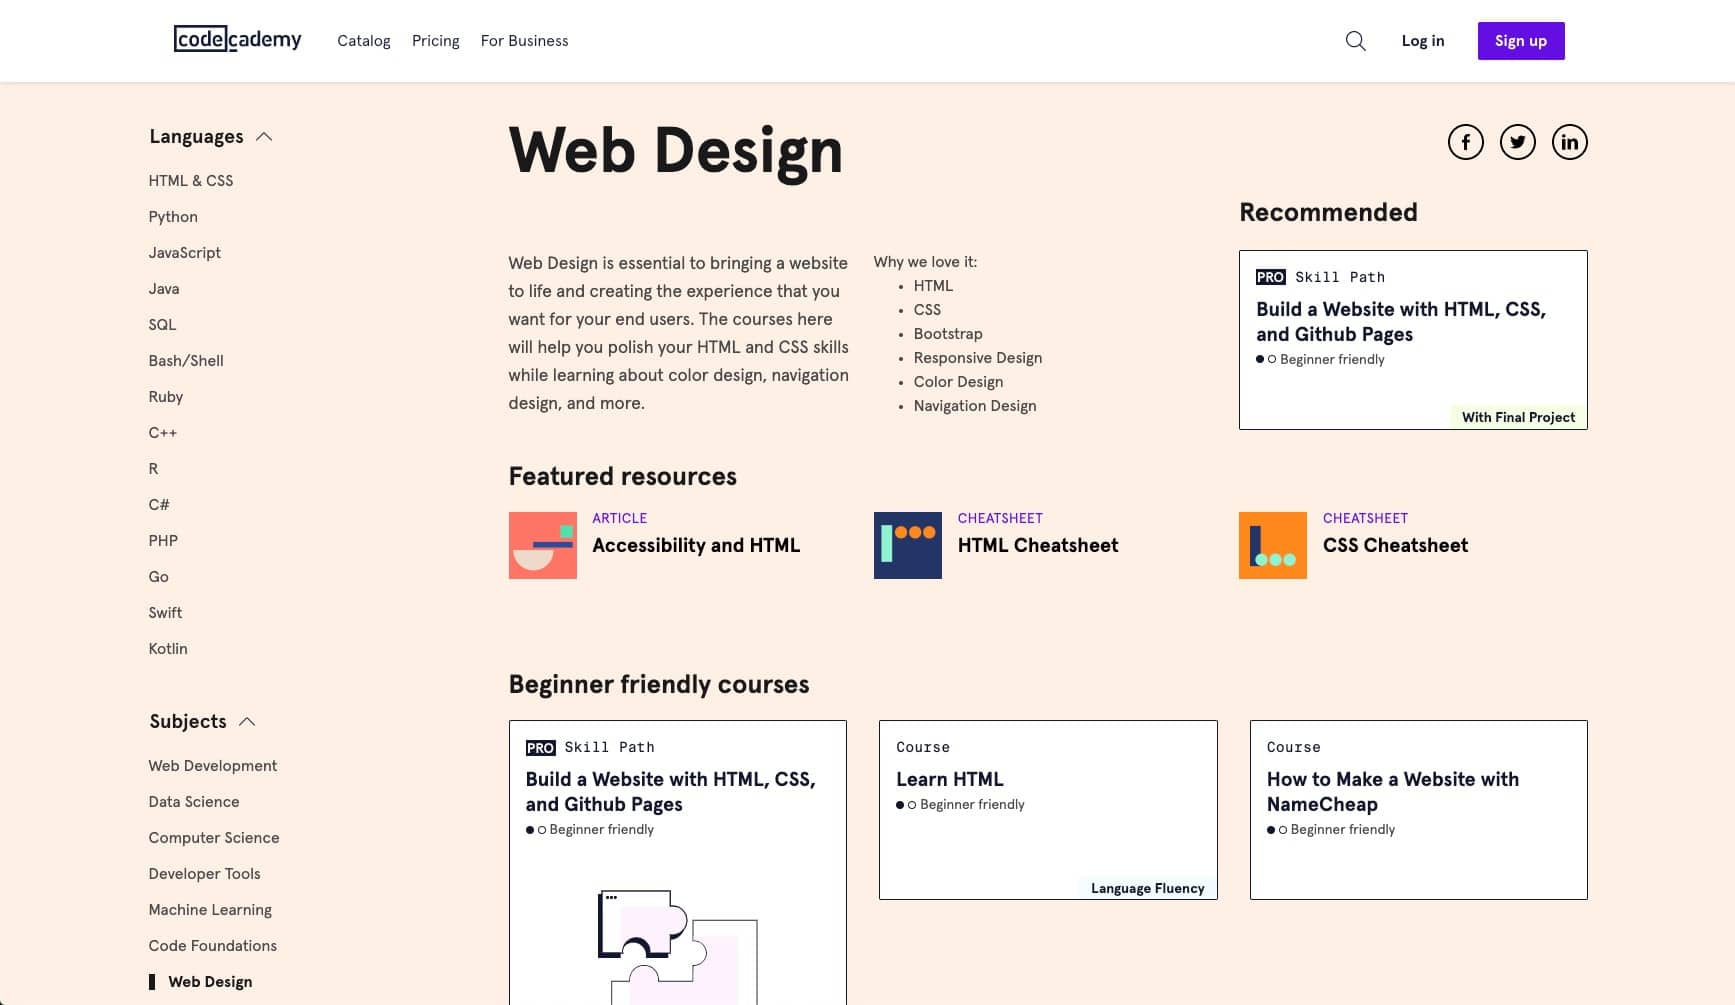 web design courses — Codecademy